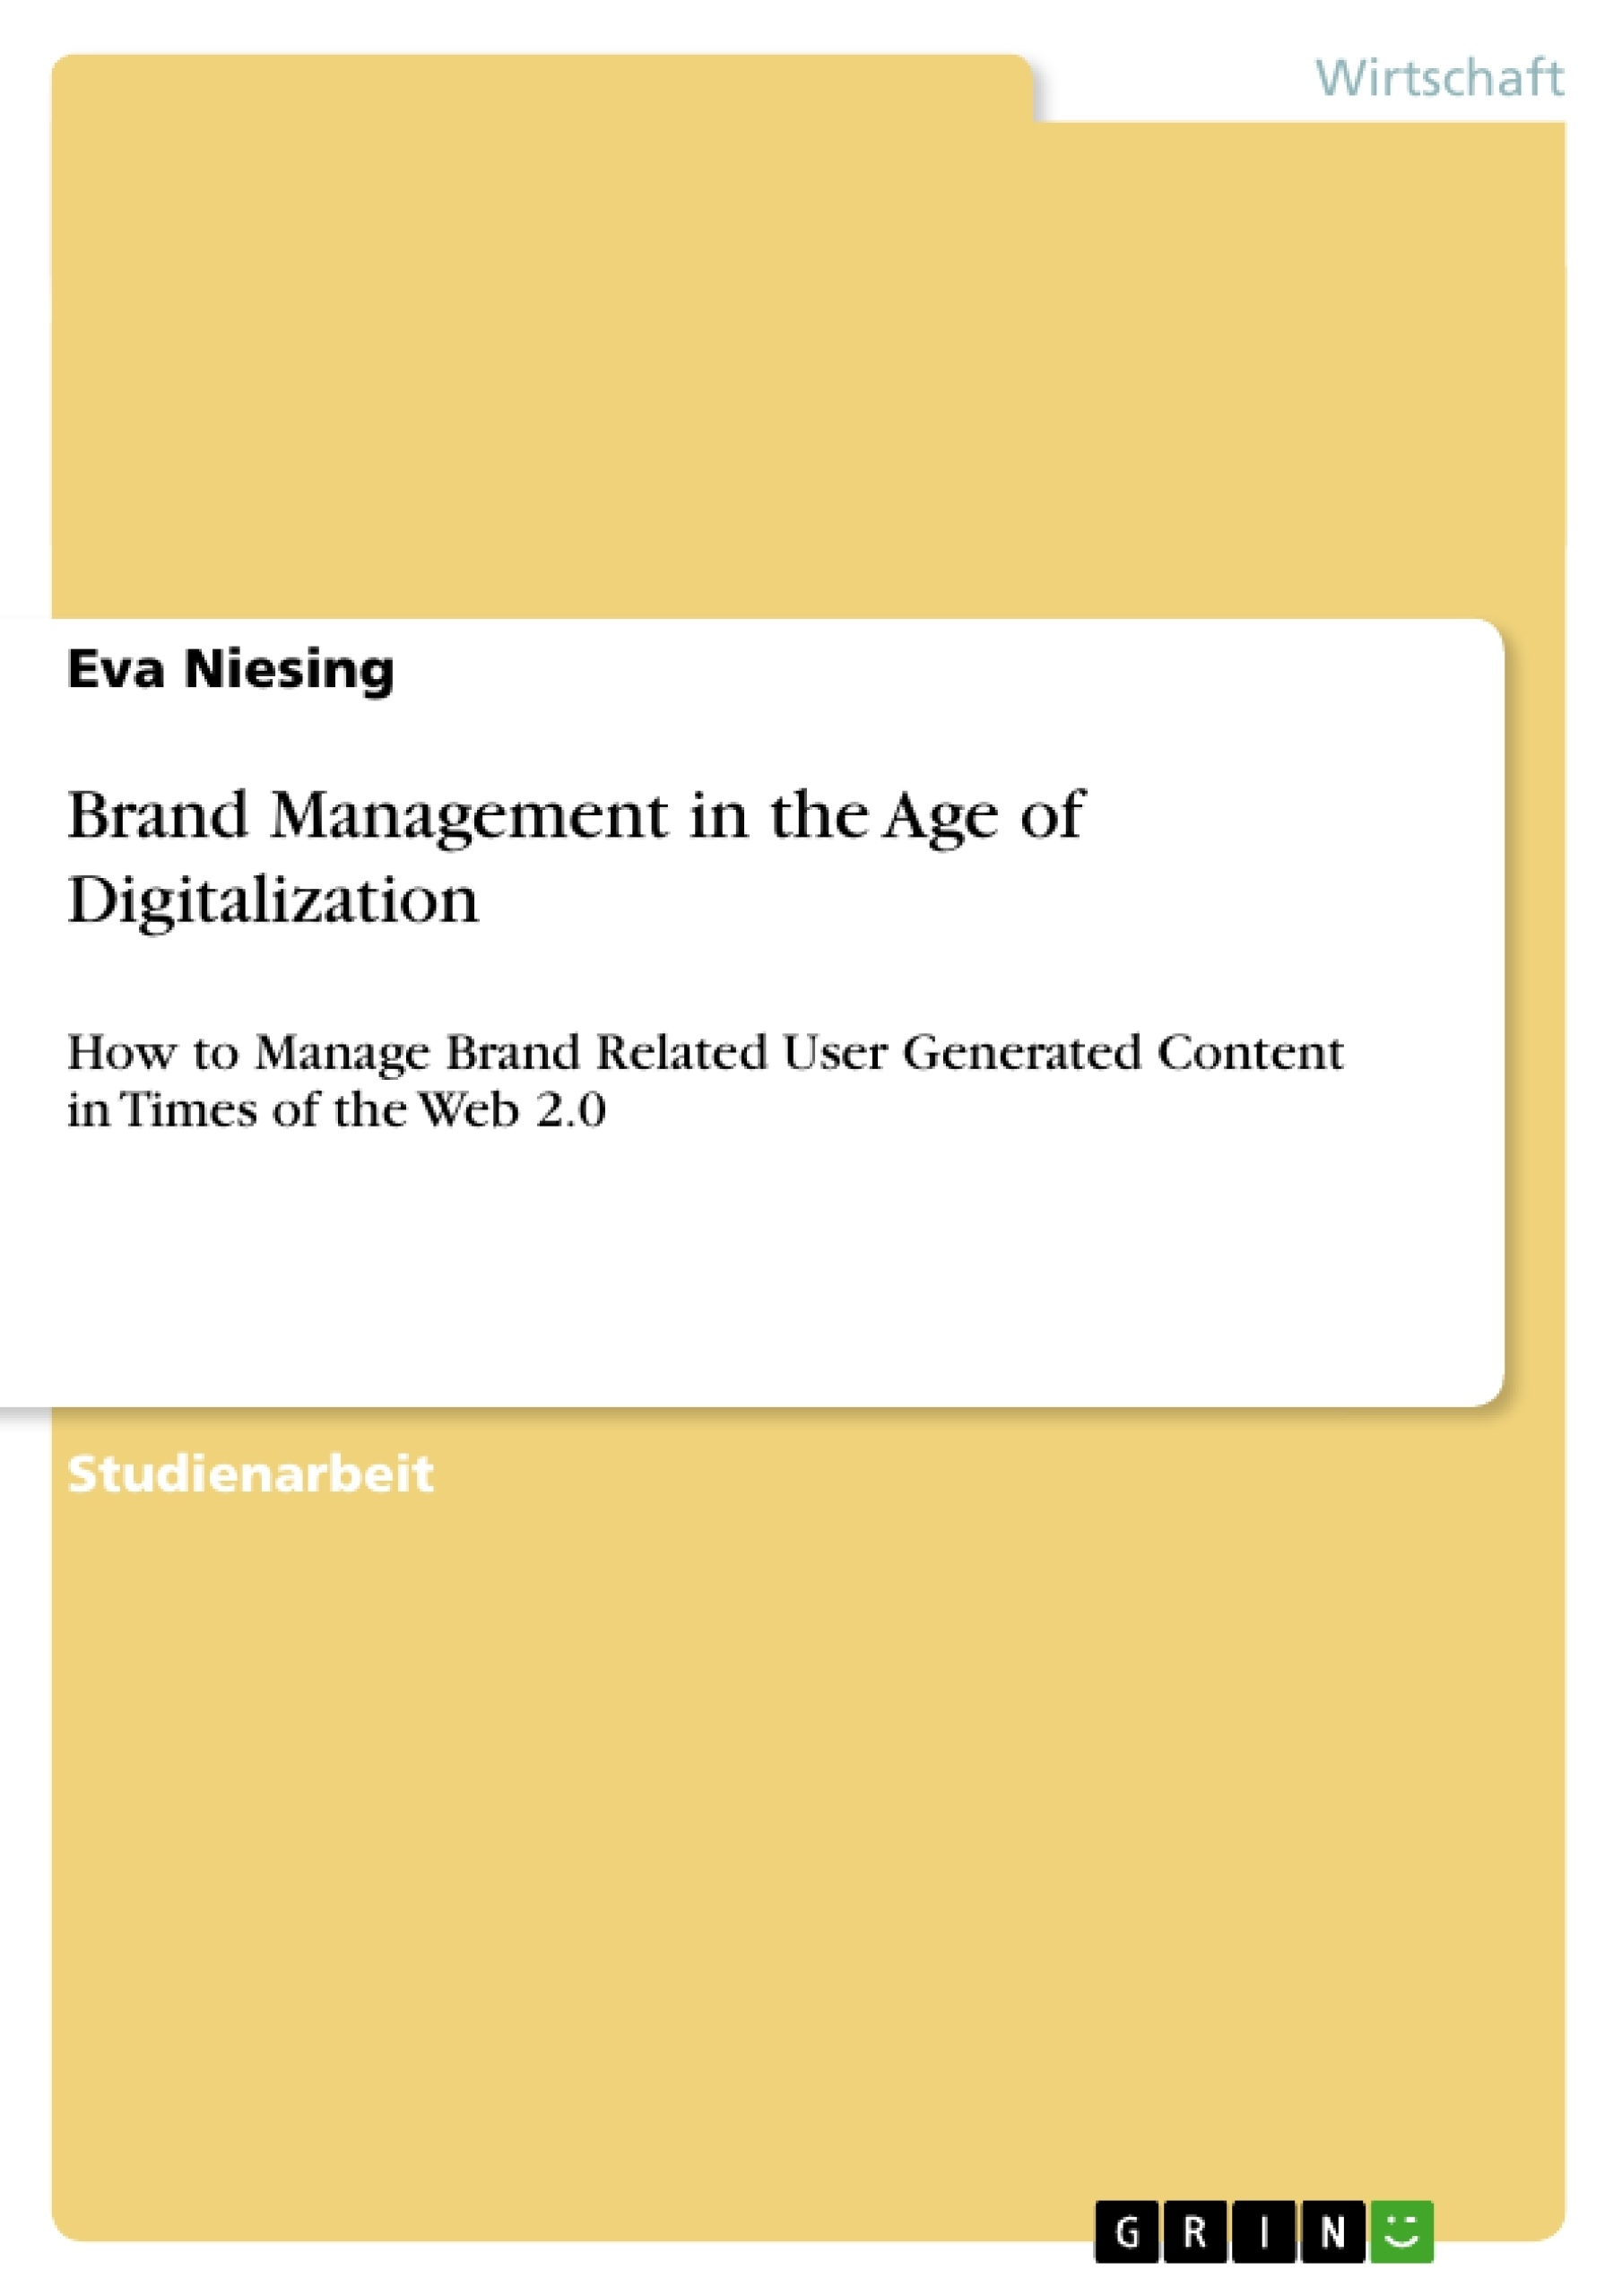 Titel: Brand Management in the Age of Digitalization